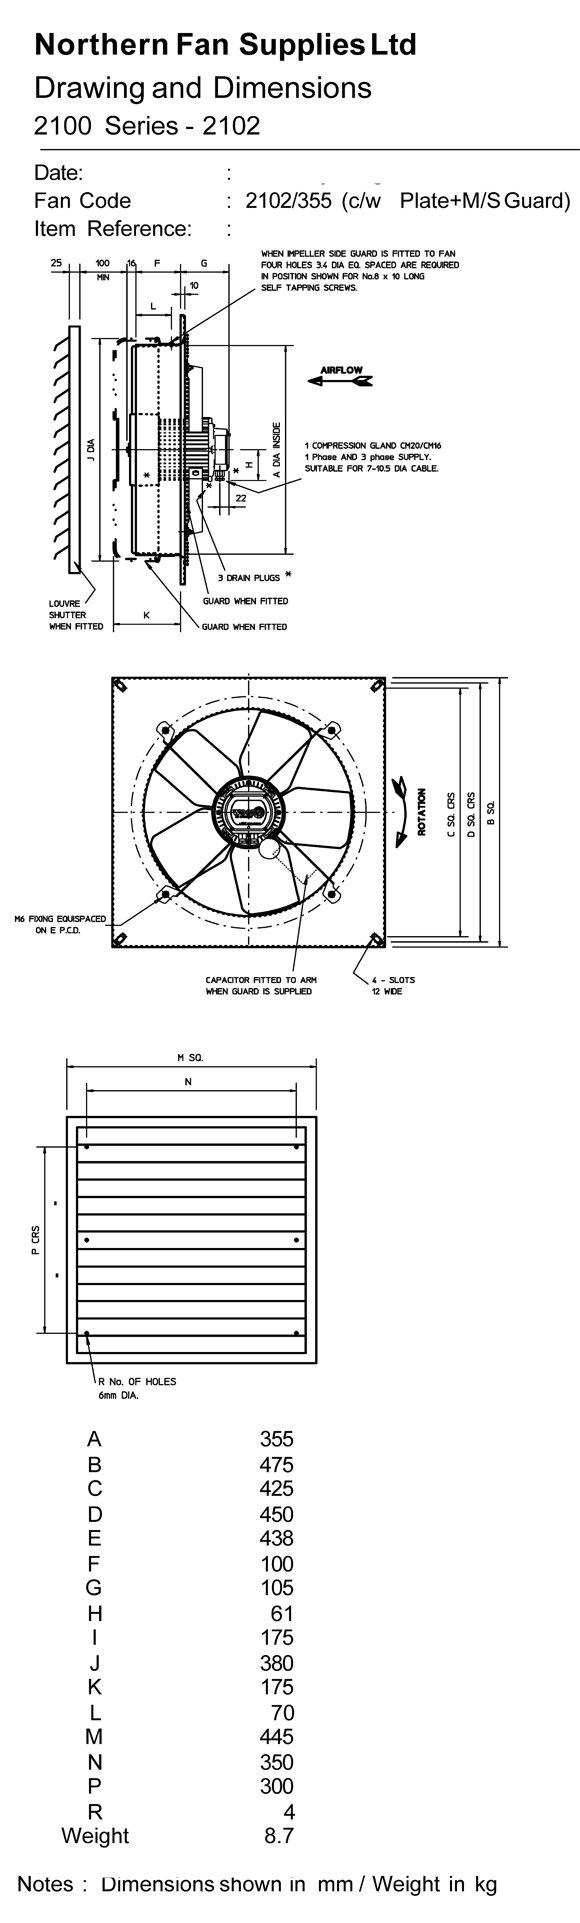 2102  355  4  1ph Plate Mounted Extract Fan By Flakt Woods    Flakt Woods    Nh351413    Nfan Supply